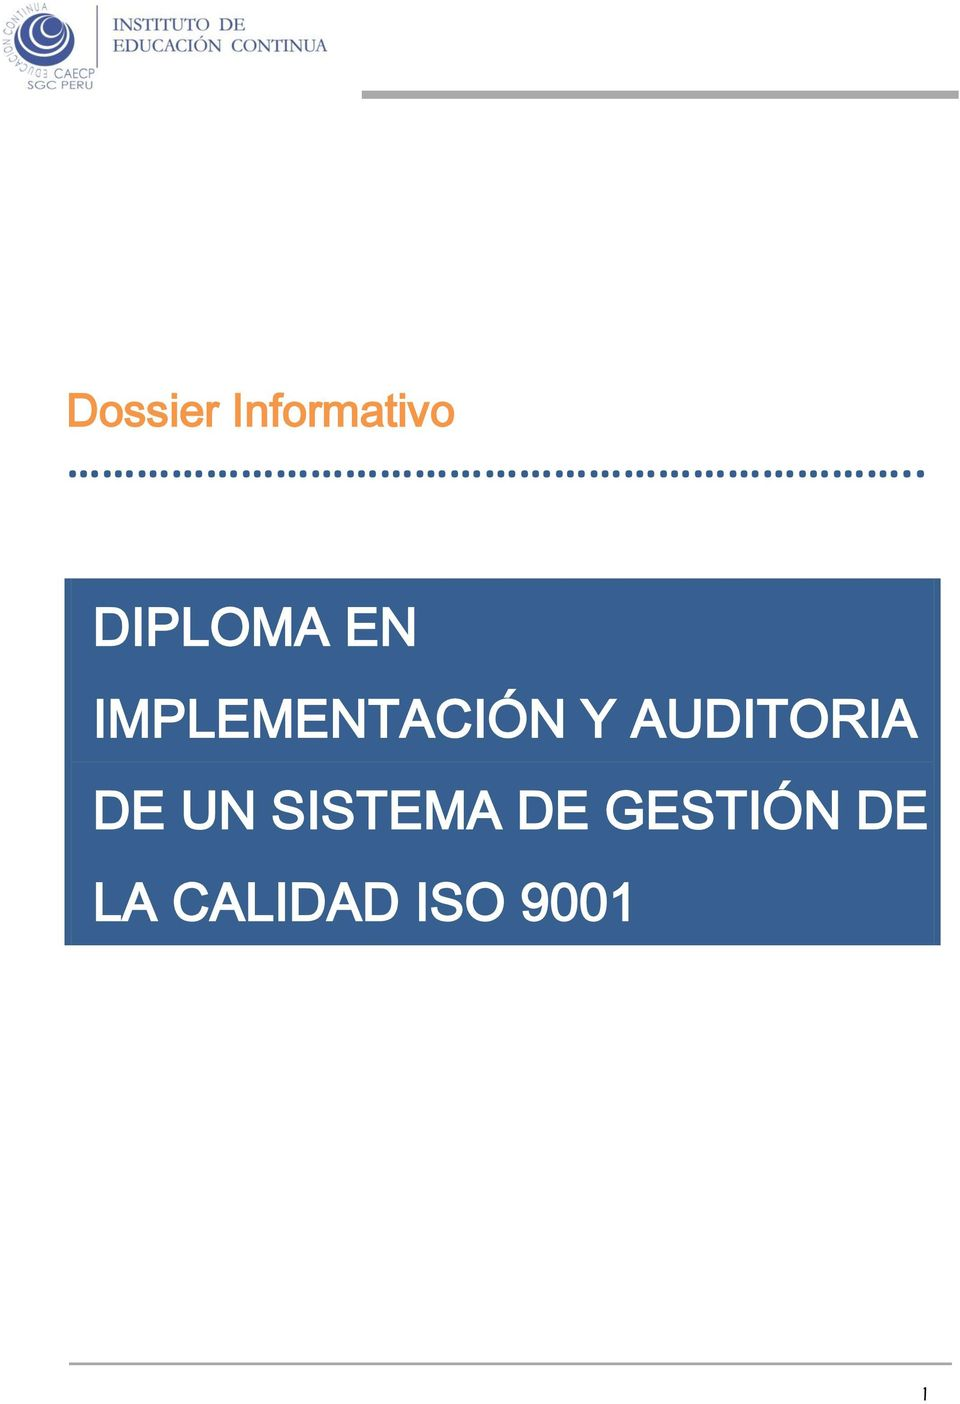 IMPLEMENTACIÓN Y AUDITORIA DE